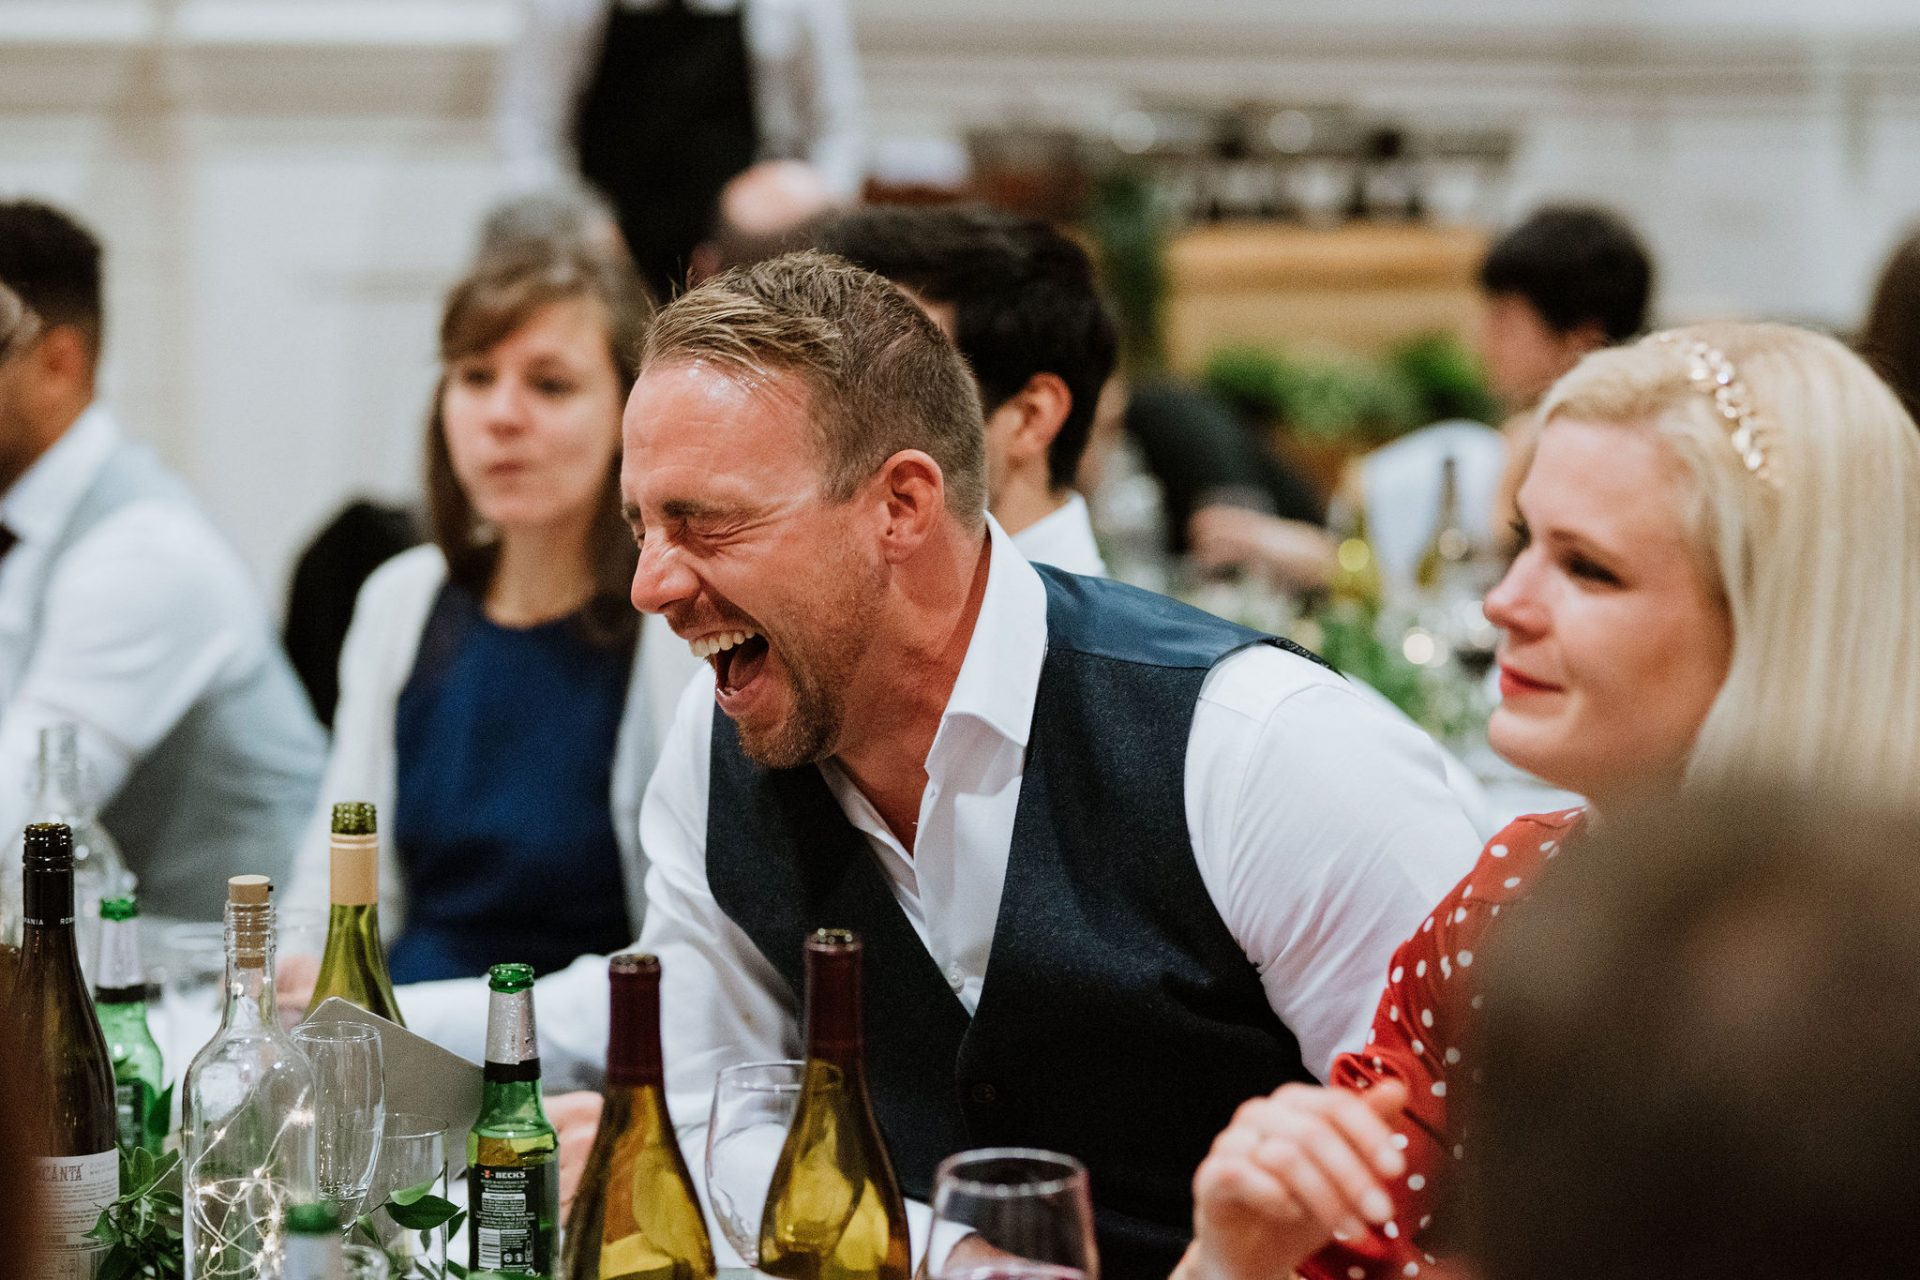 guests laughing wedding breakfast canid anglican chapel